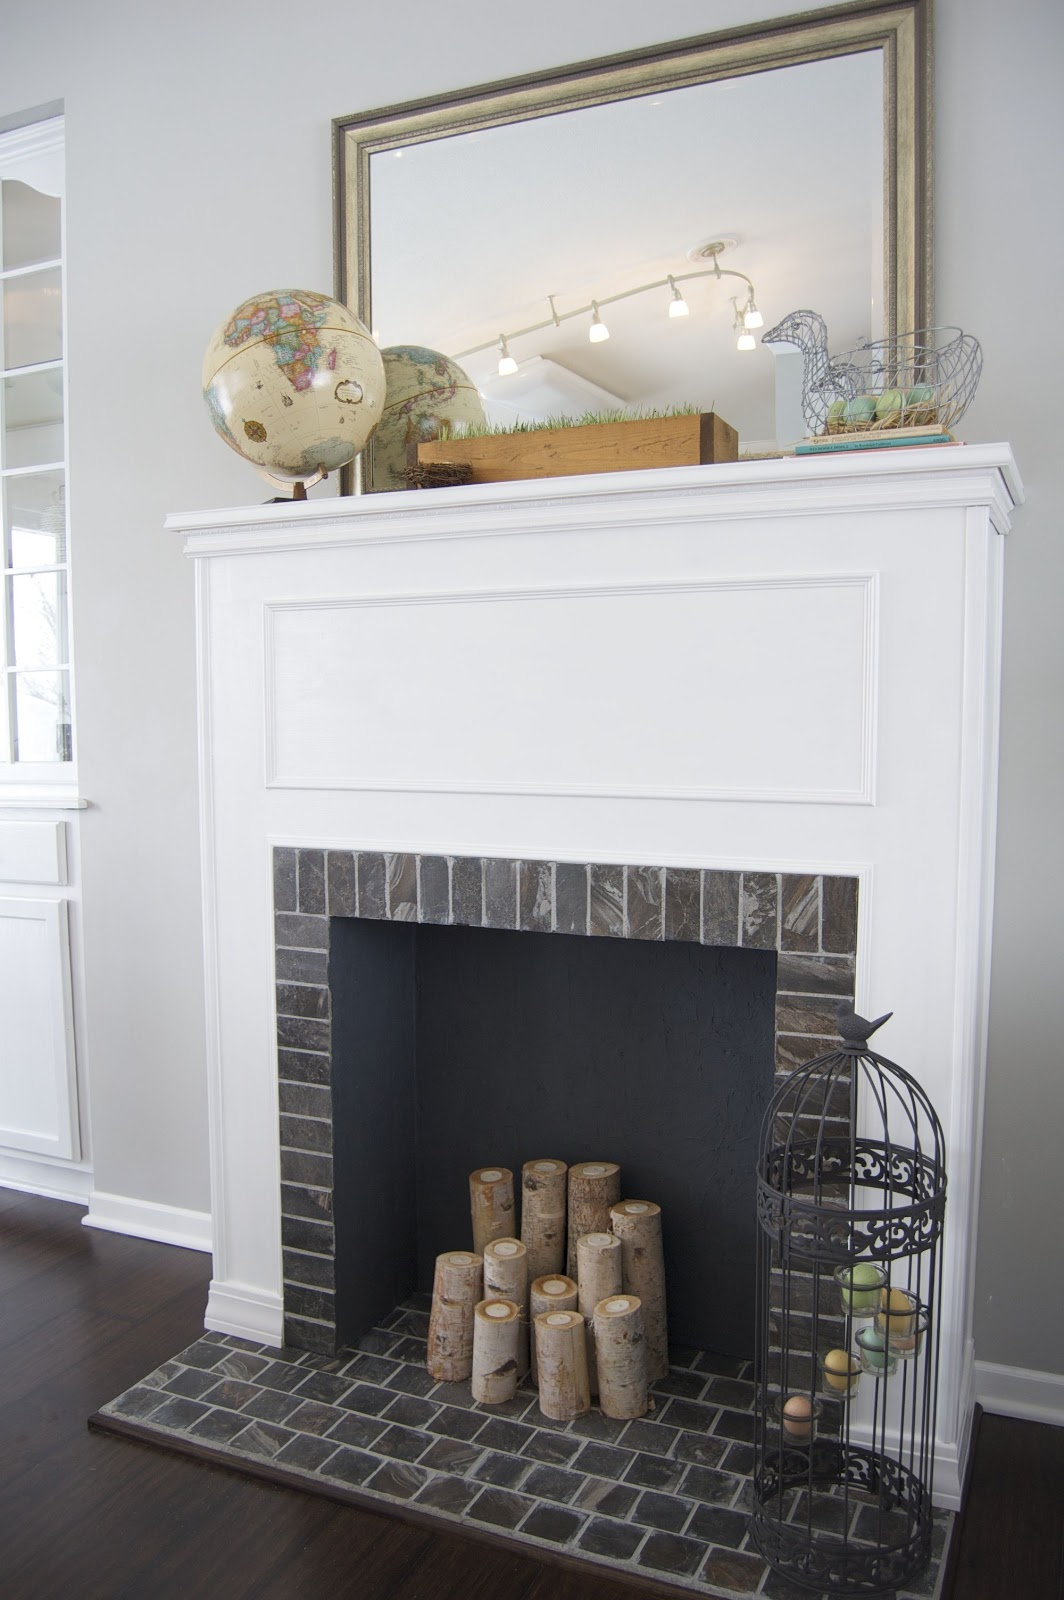 How To Build a Faux Fireplace | matsutake